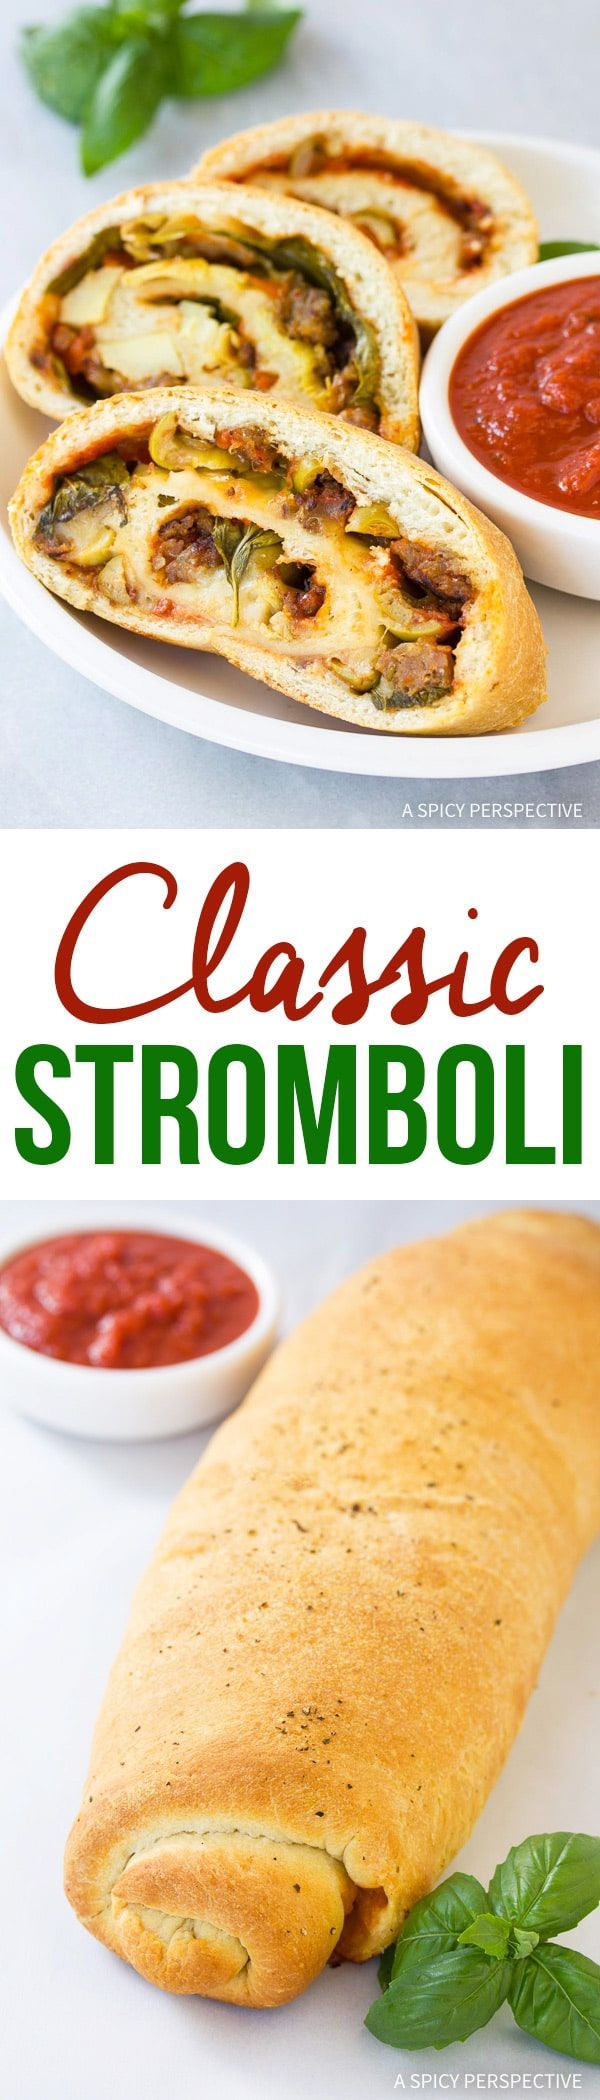 Our Classic Stromboli Recipe is the mother of all comfort dishes. Bold and cheesy with a yeasty crust. If you've ever wanted to learn how to make stromboli, this is the recipe! via @spicyperspectiv